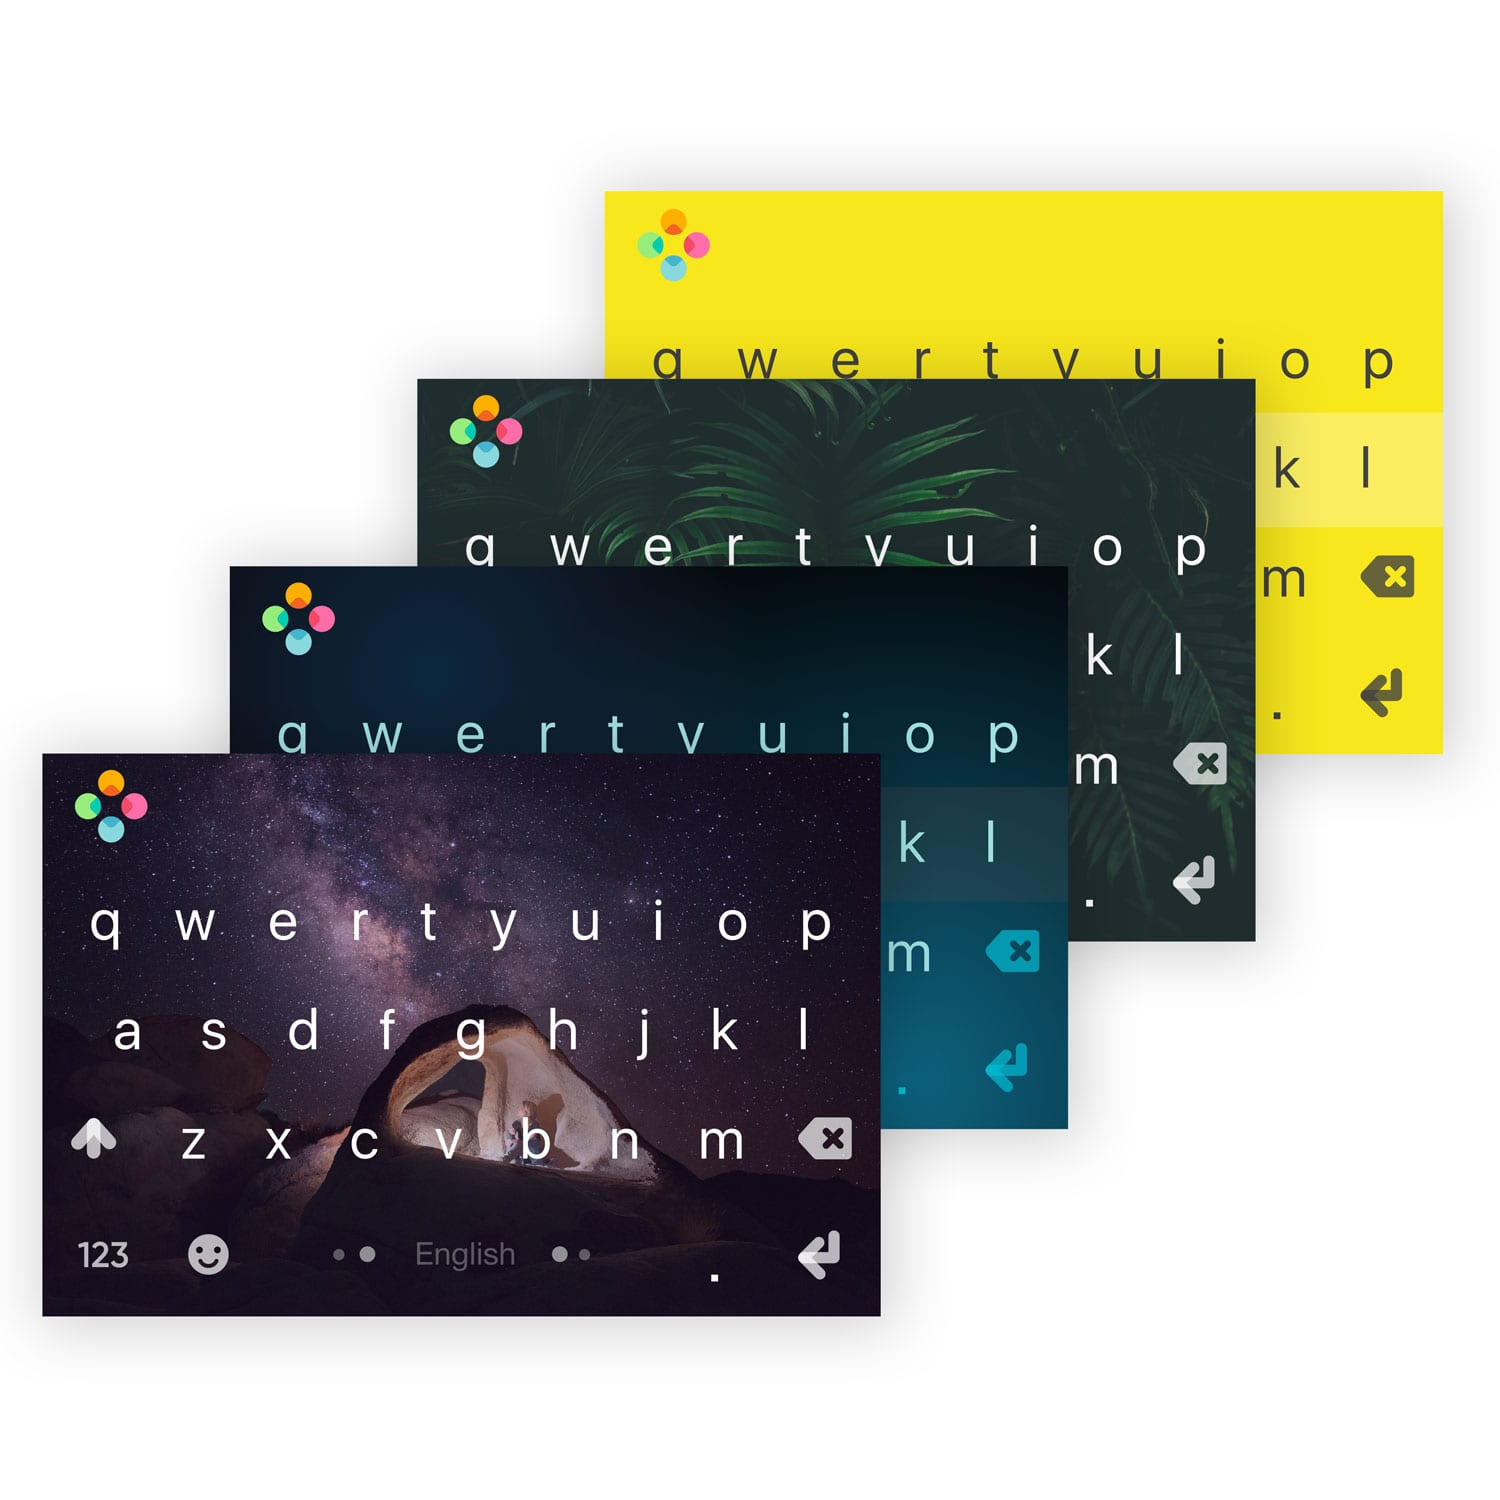 fleksy-keyboard-has-many-themes-colors-that-you-can-customize-build-your-own-theme-with-personal-photos